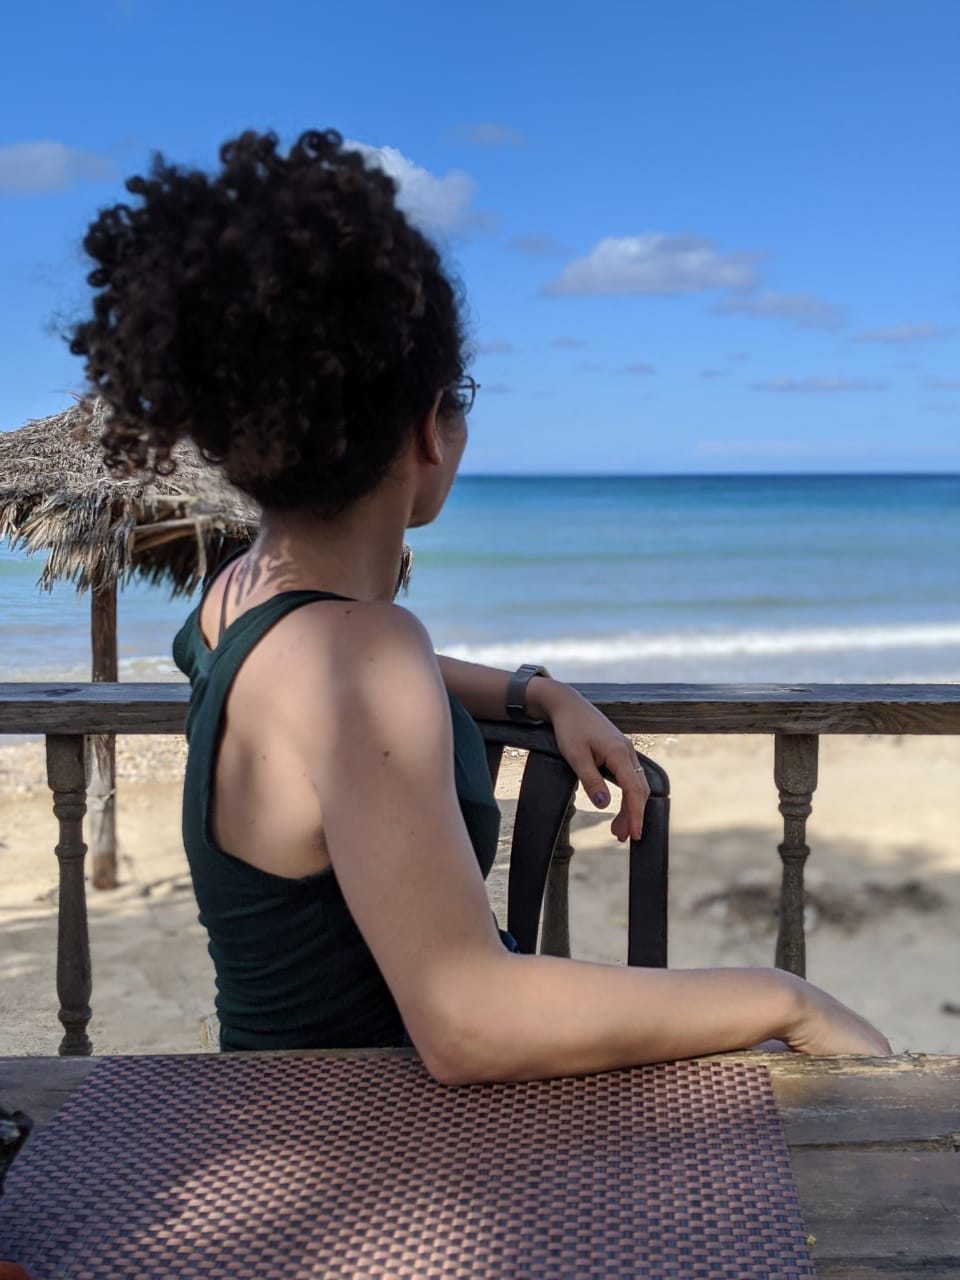 GO Leader Sarah in Jamaica March 2018, with a student group.